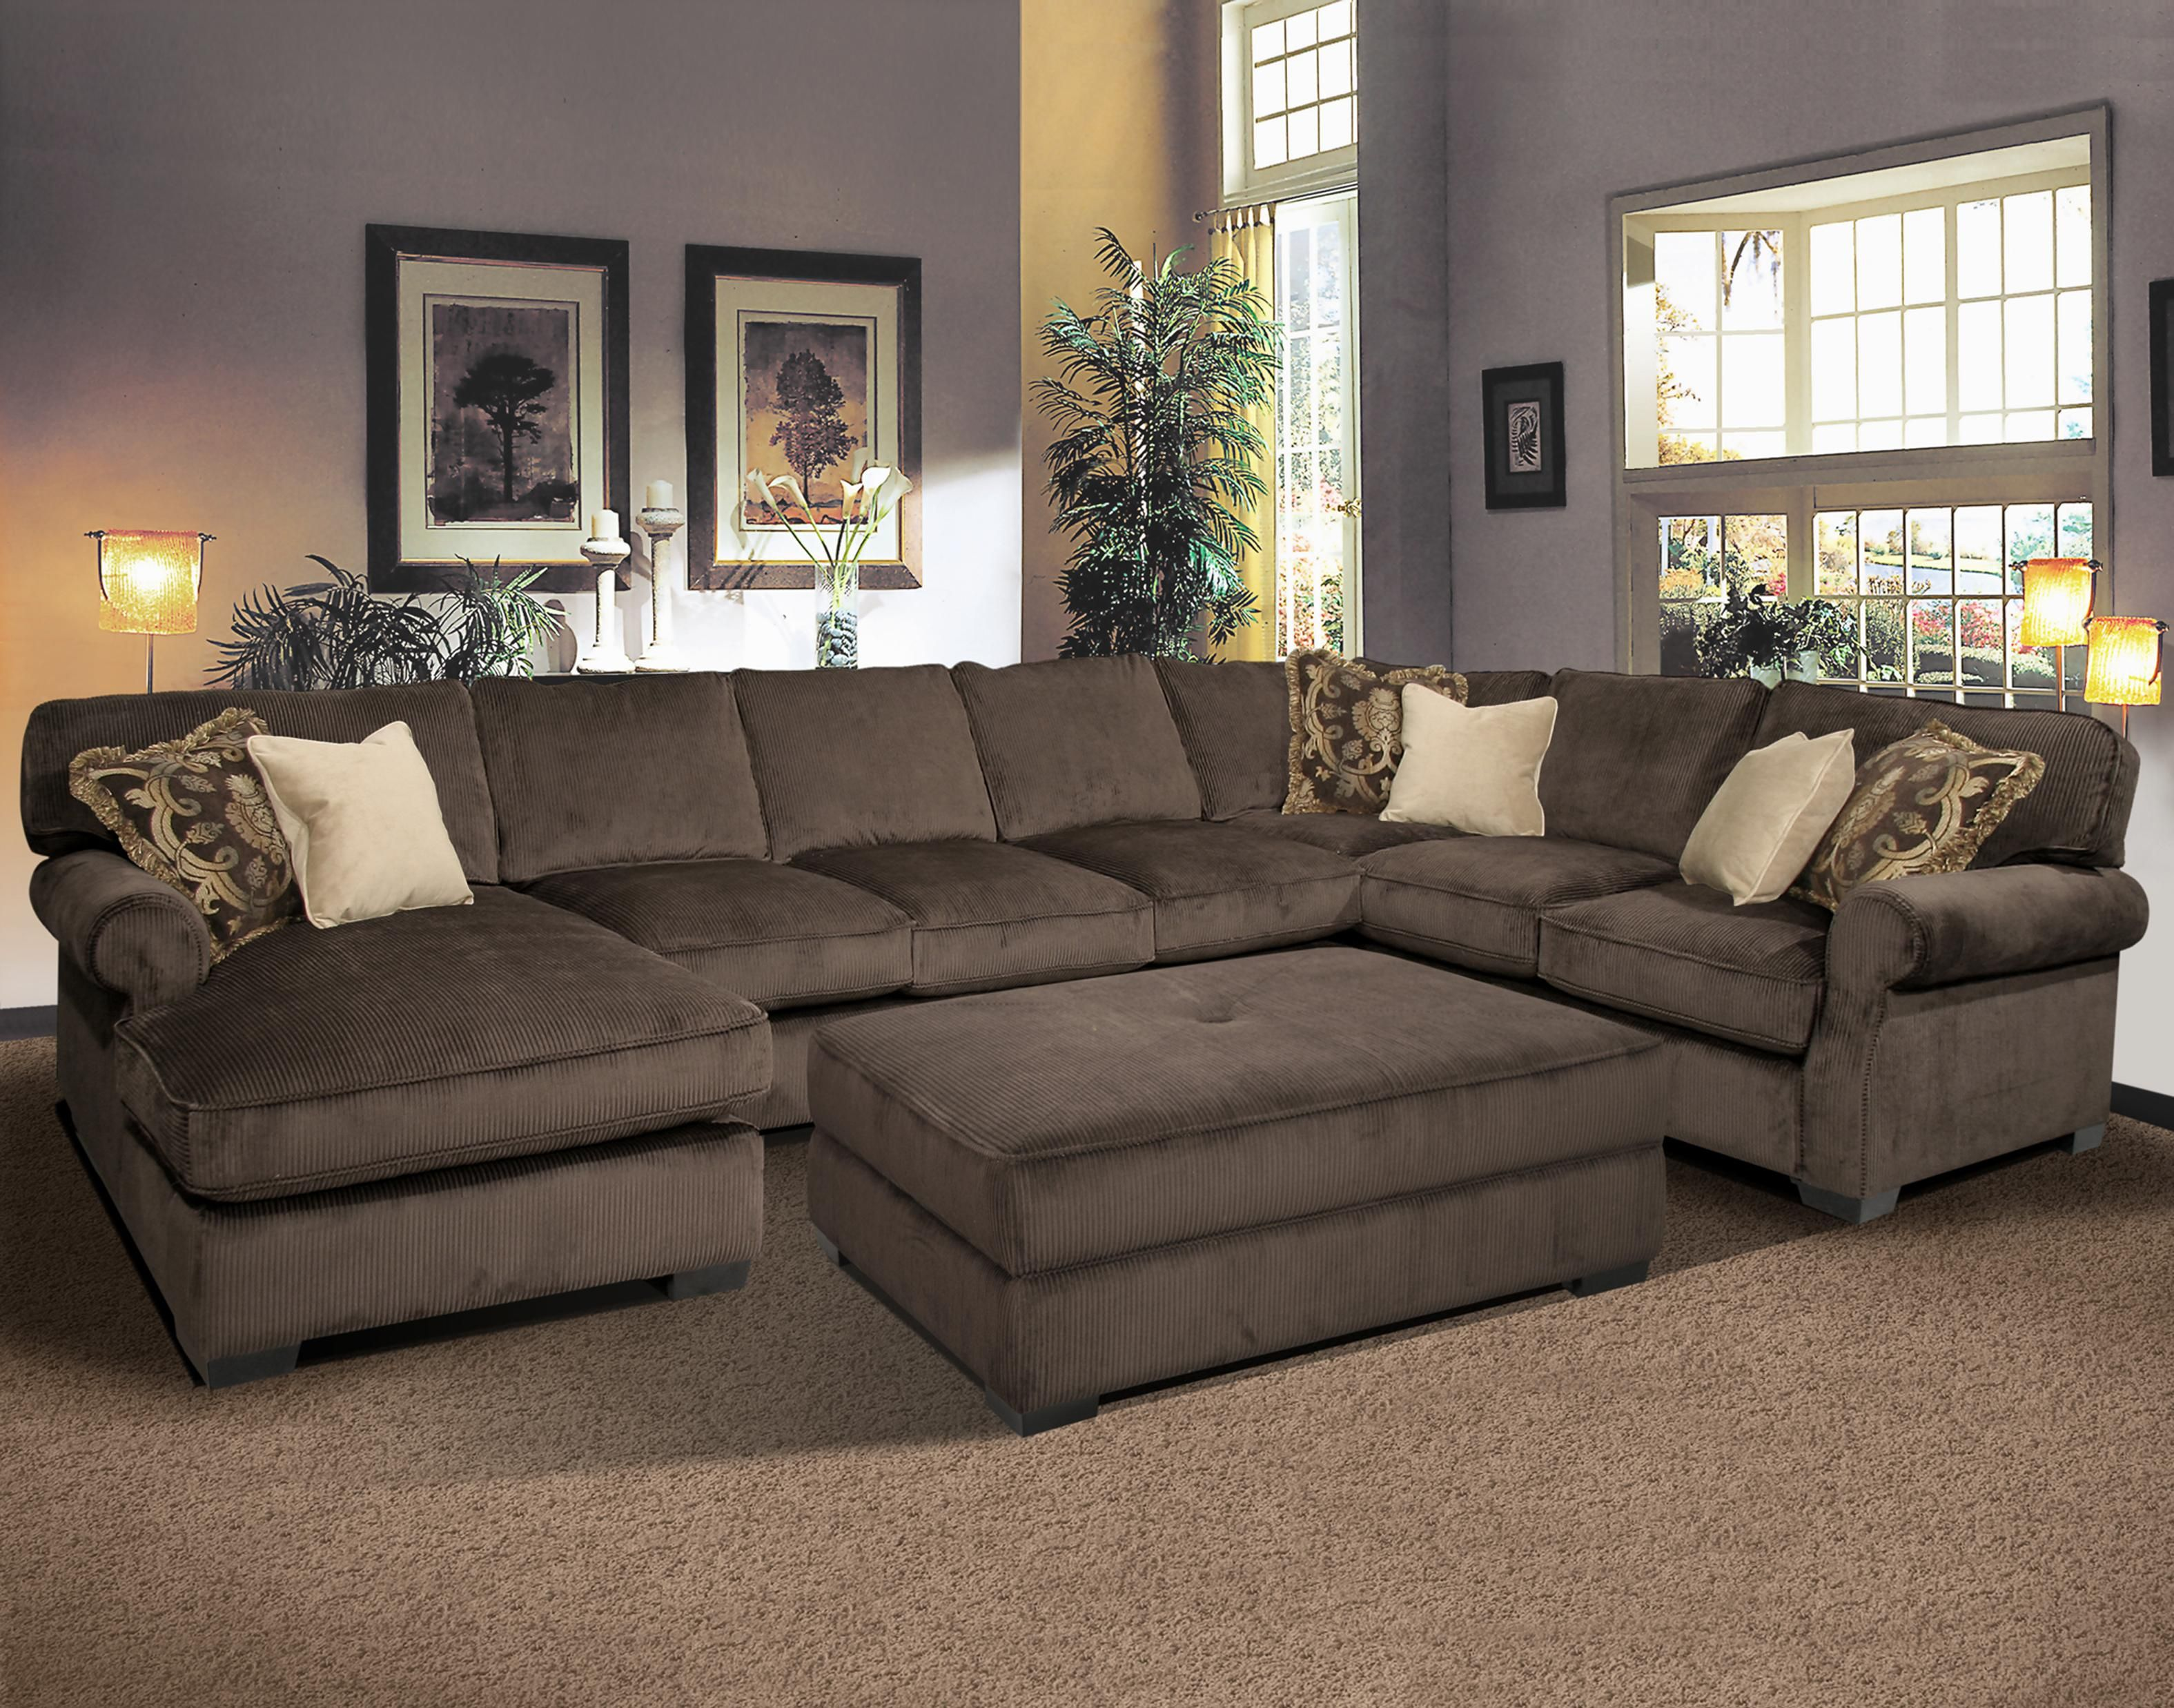 Grand Island Oversized Cocktail Ottoman for Sectional Sofa by Fairmont  Seating - Ruby Gordon Home Furnishings - Ottoman Rochester, Henrietta,  Monroe County,